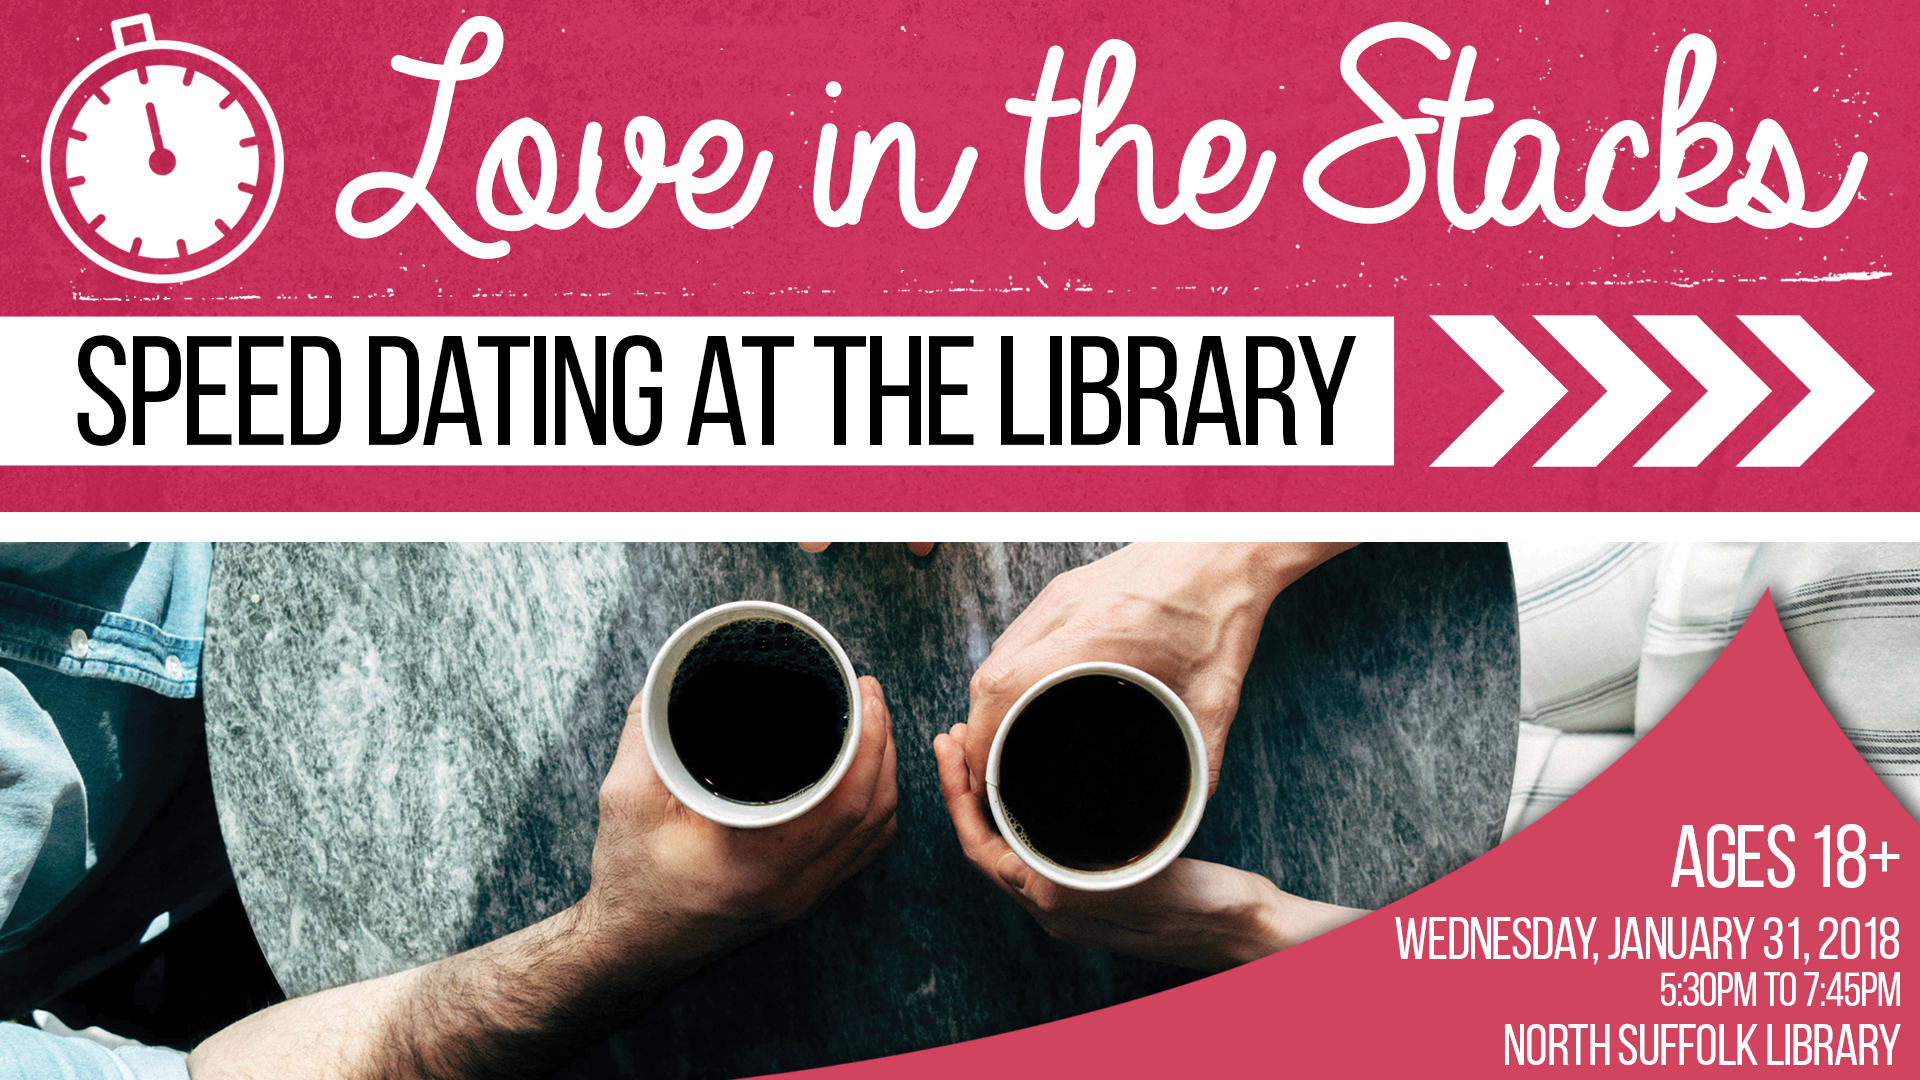 Love in the Stacks! Speed Dating at the Library